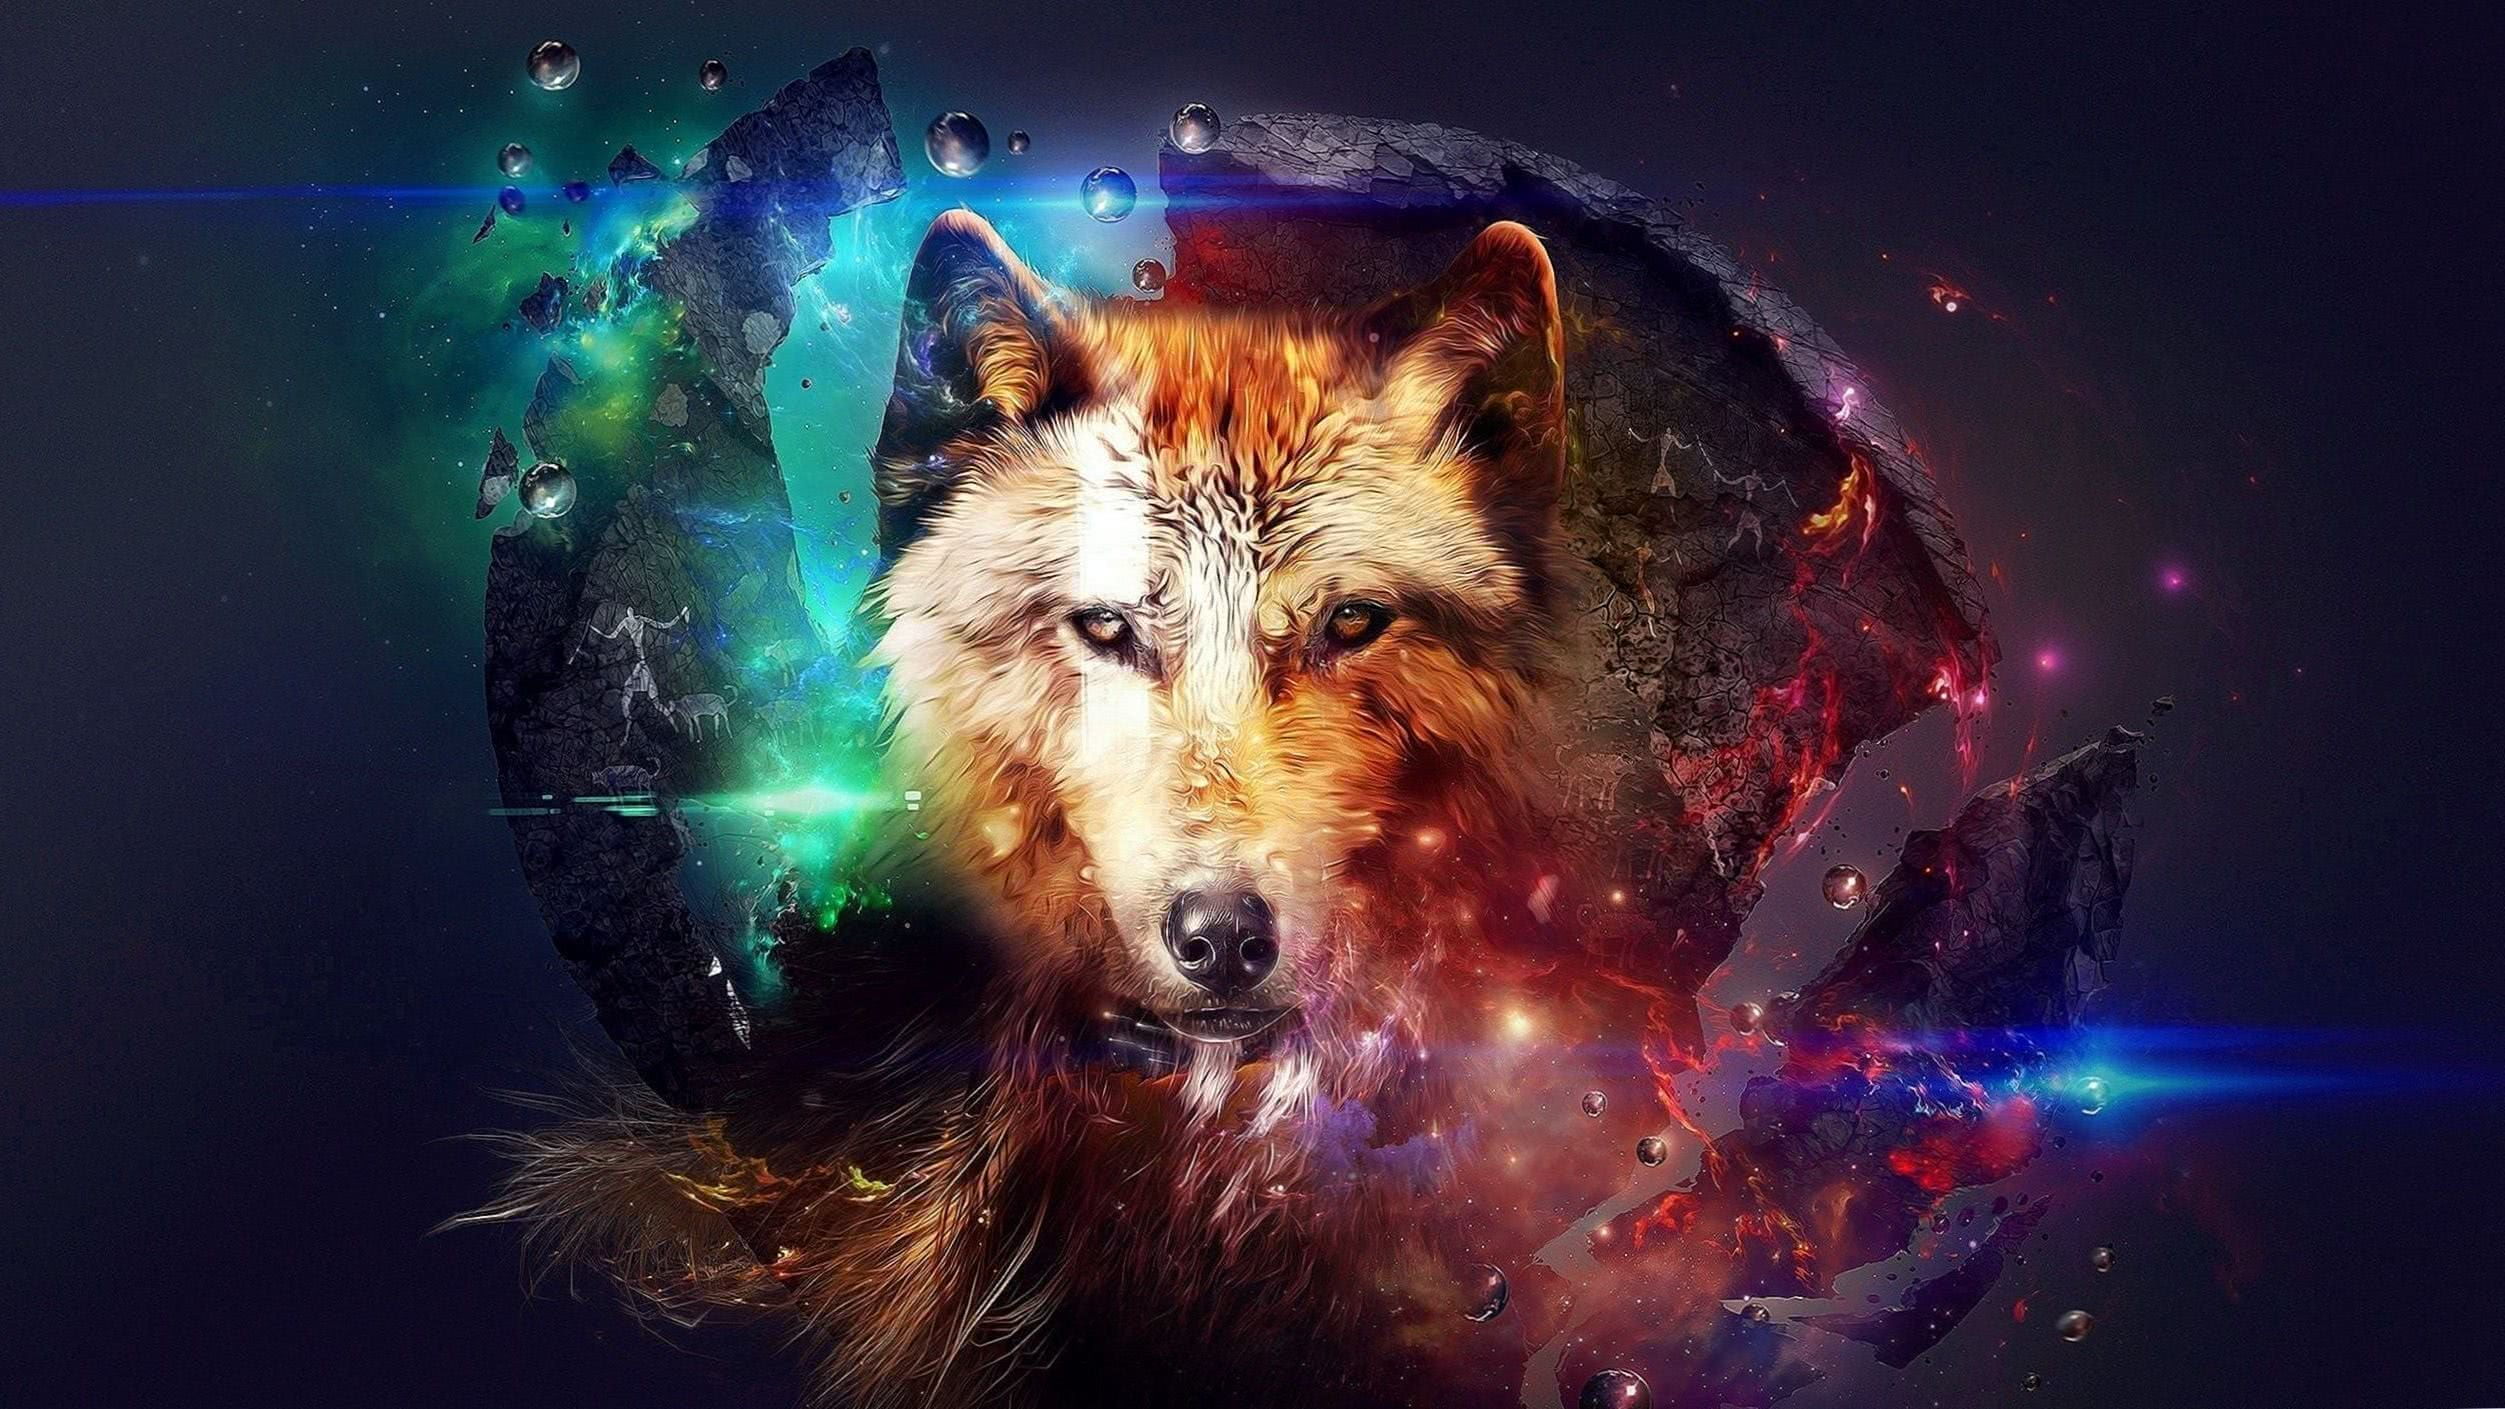 Wolf Wallpaper Space